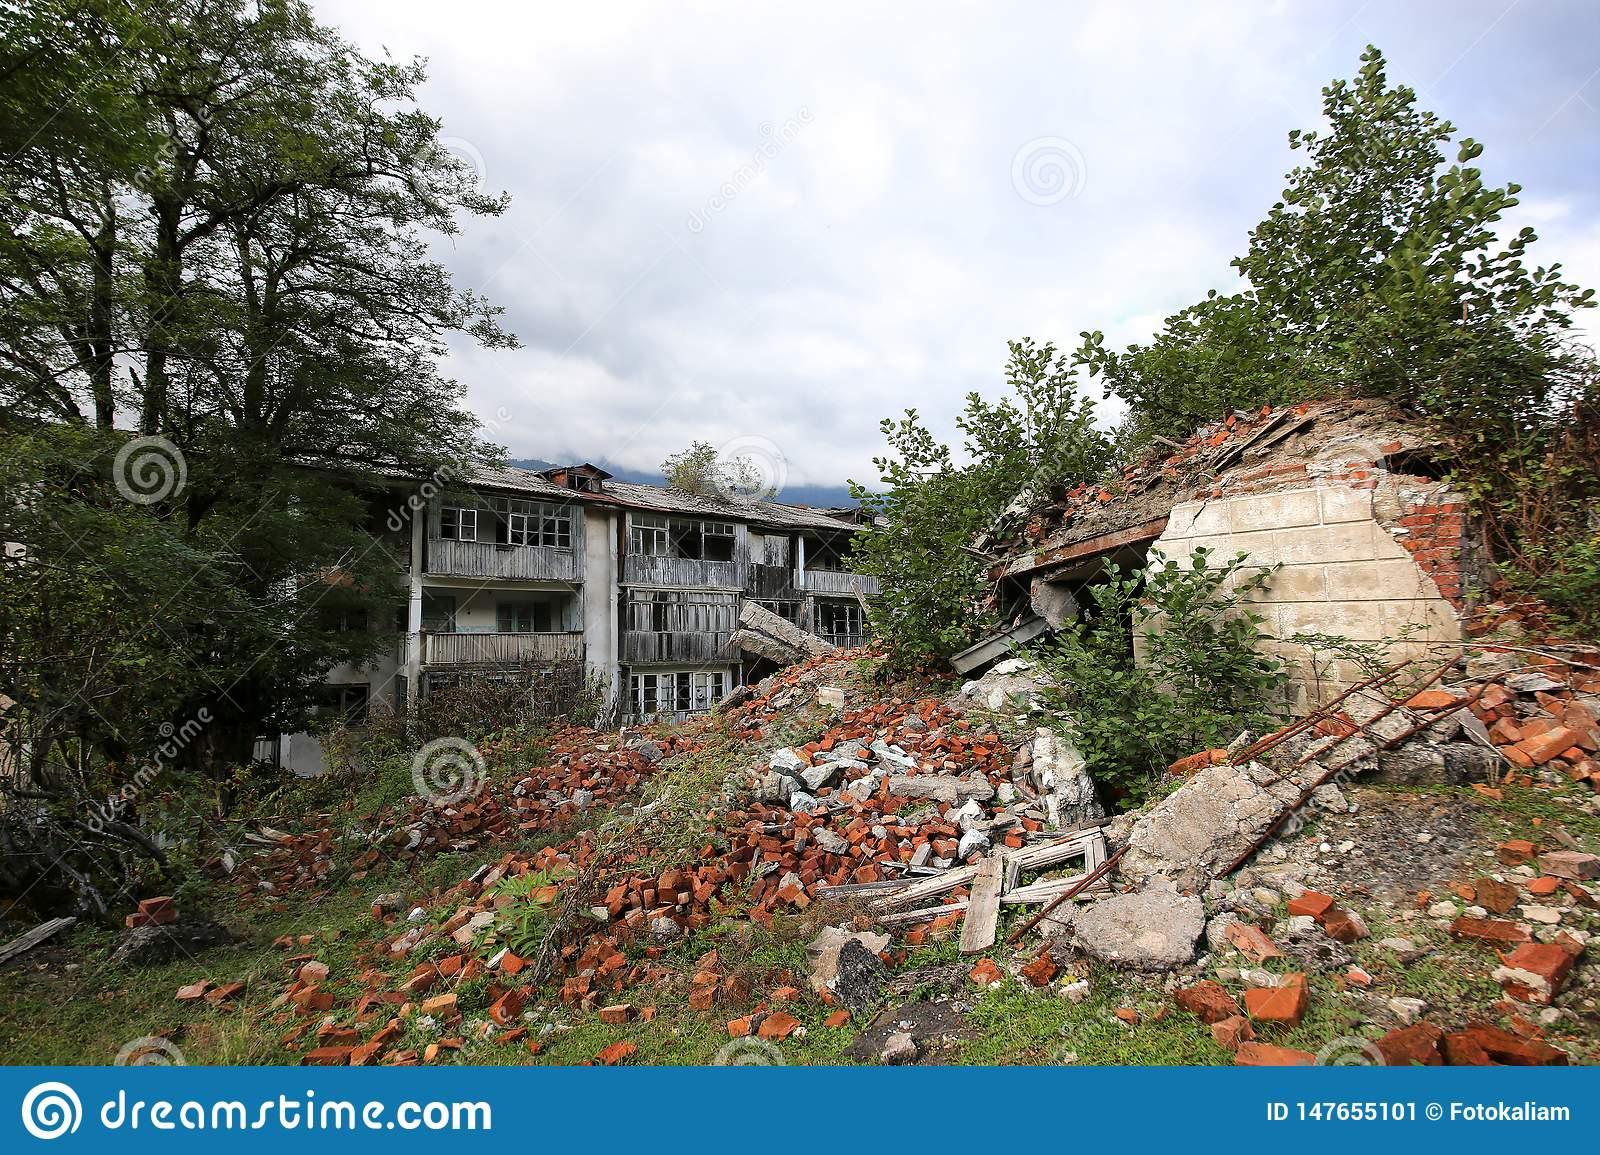 Abandoned mining village, destroyed during the Georgian-Abkhaz war in 1992